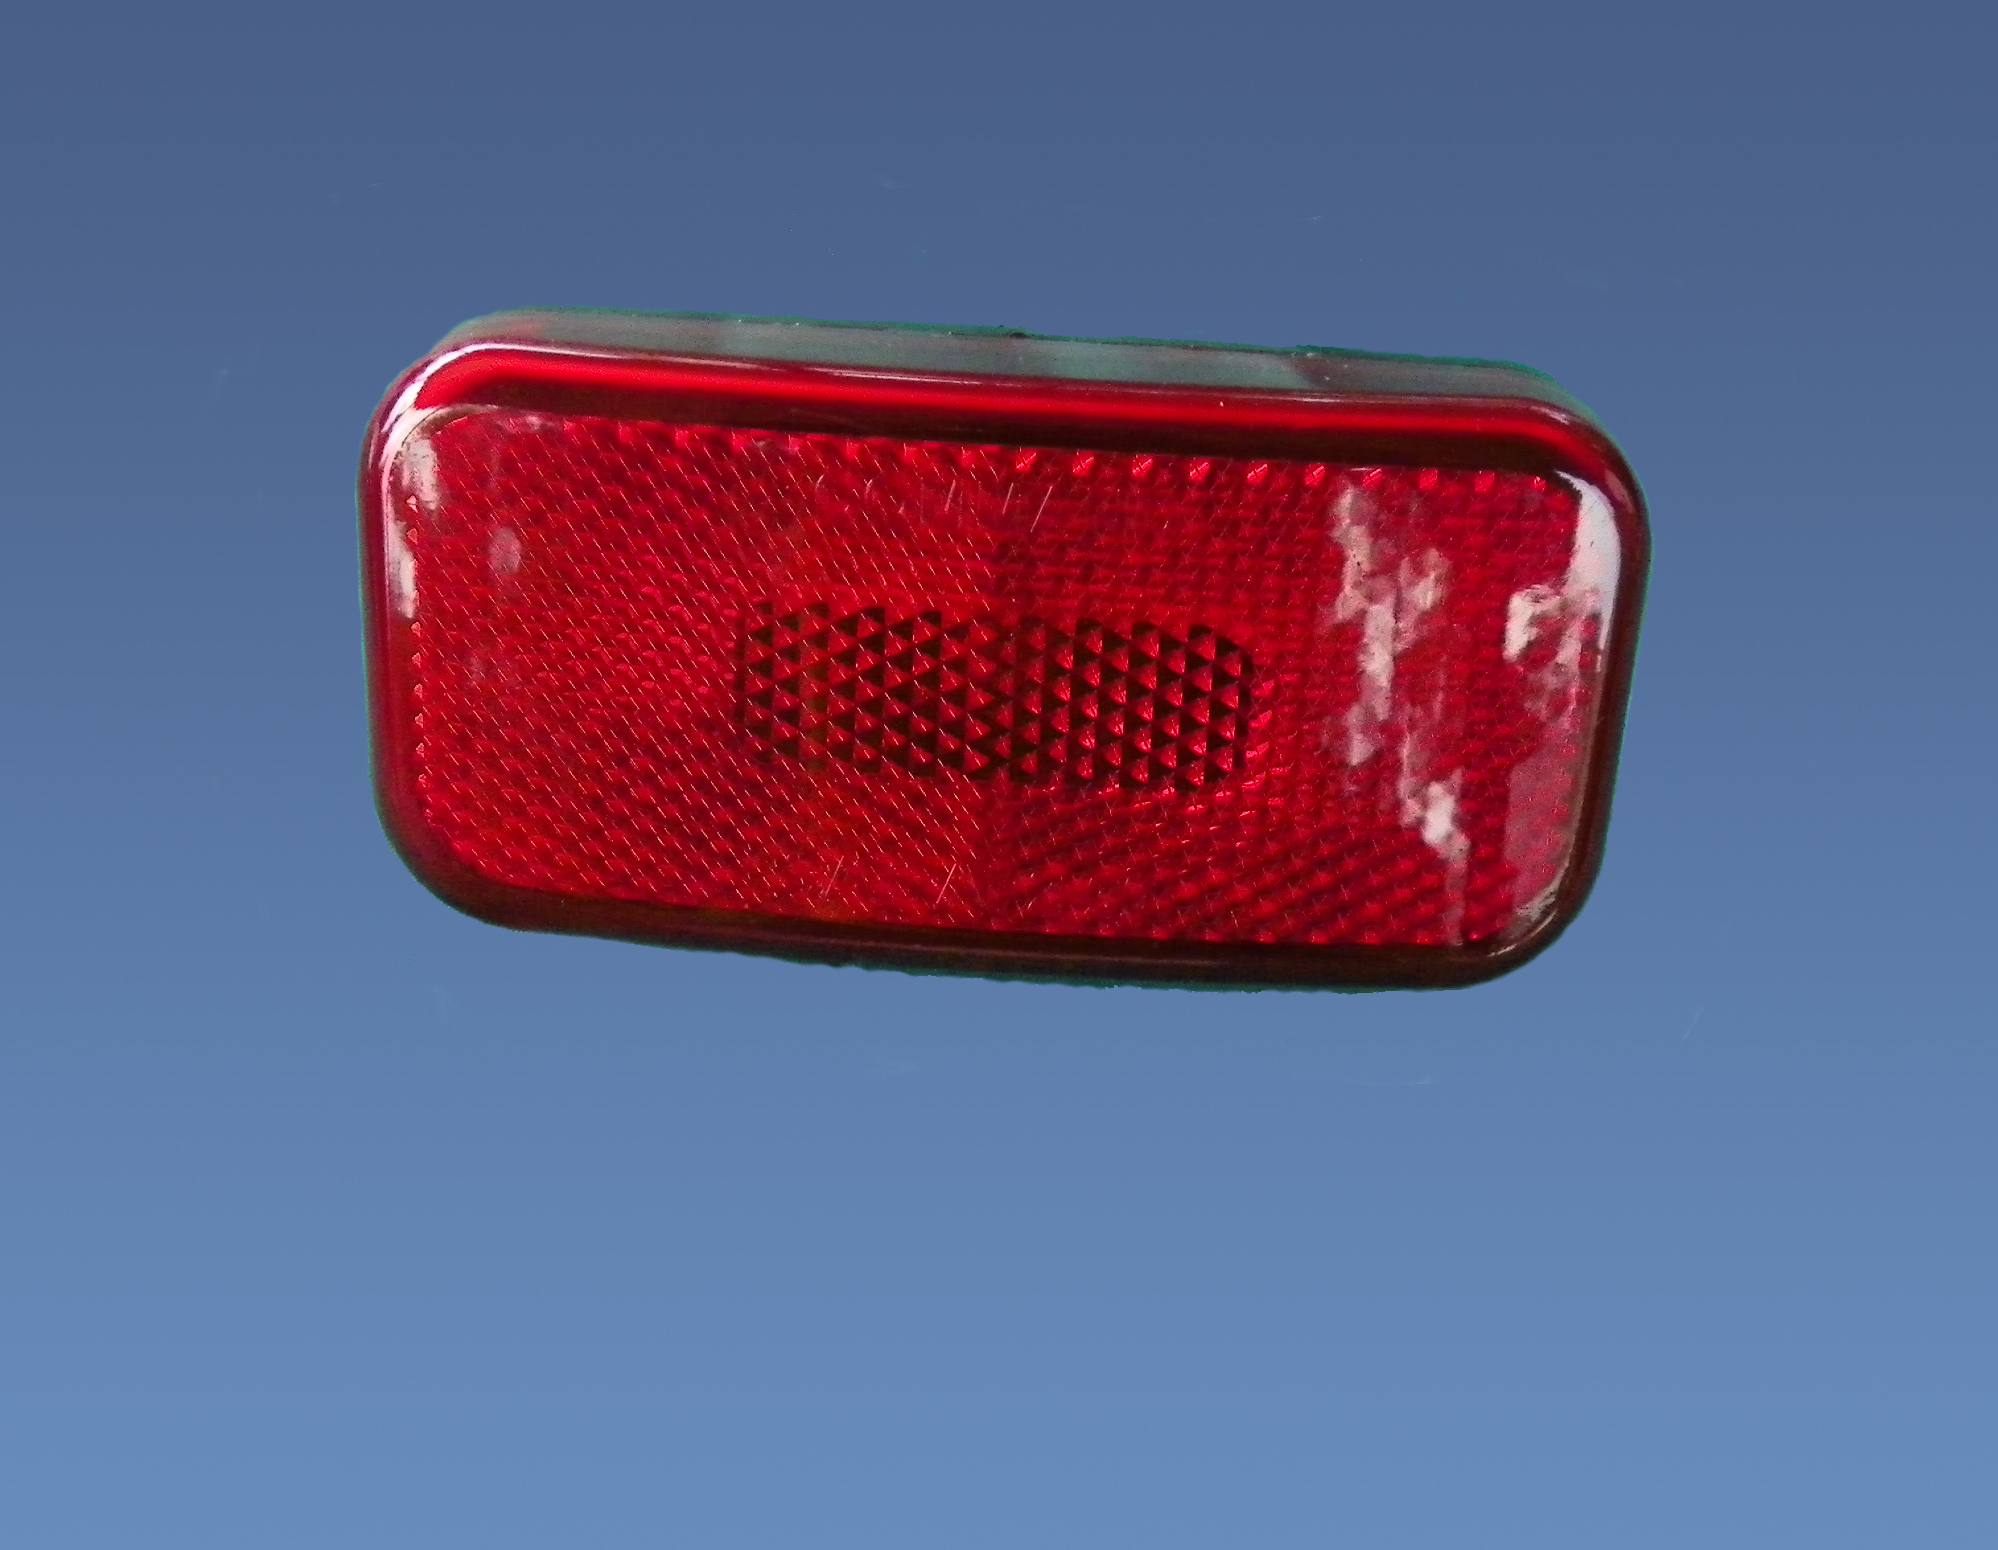 003-58B Fasteners Unlimited Tail Light Assembly Red Lens